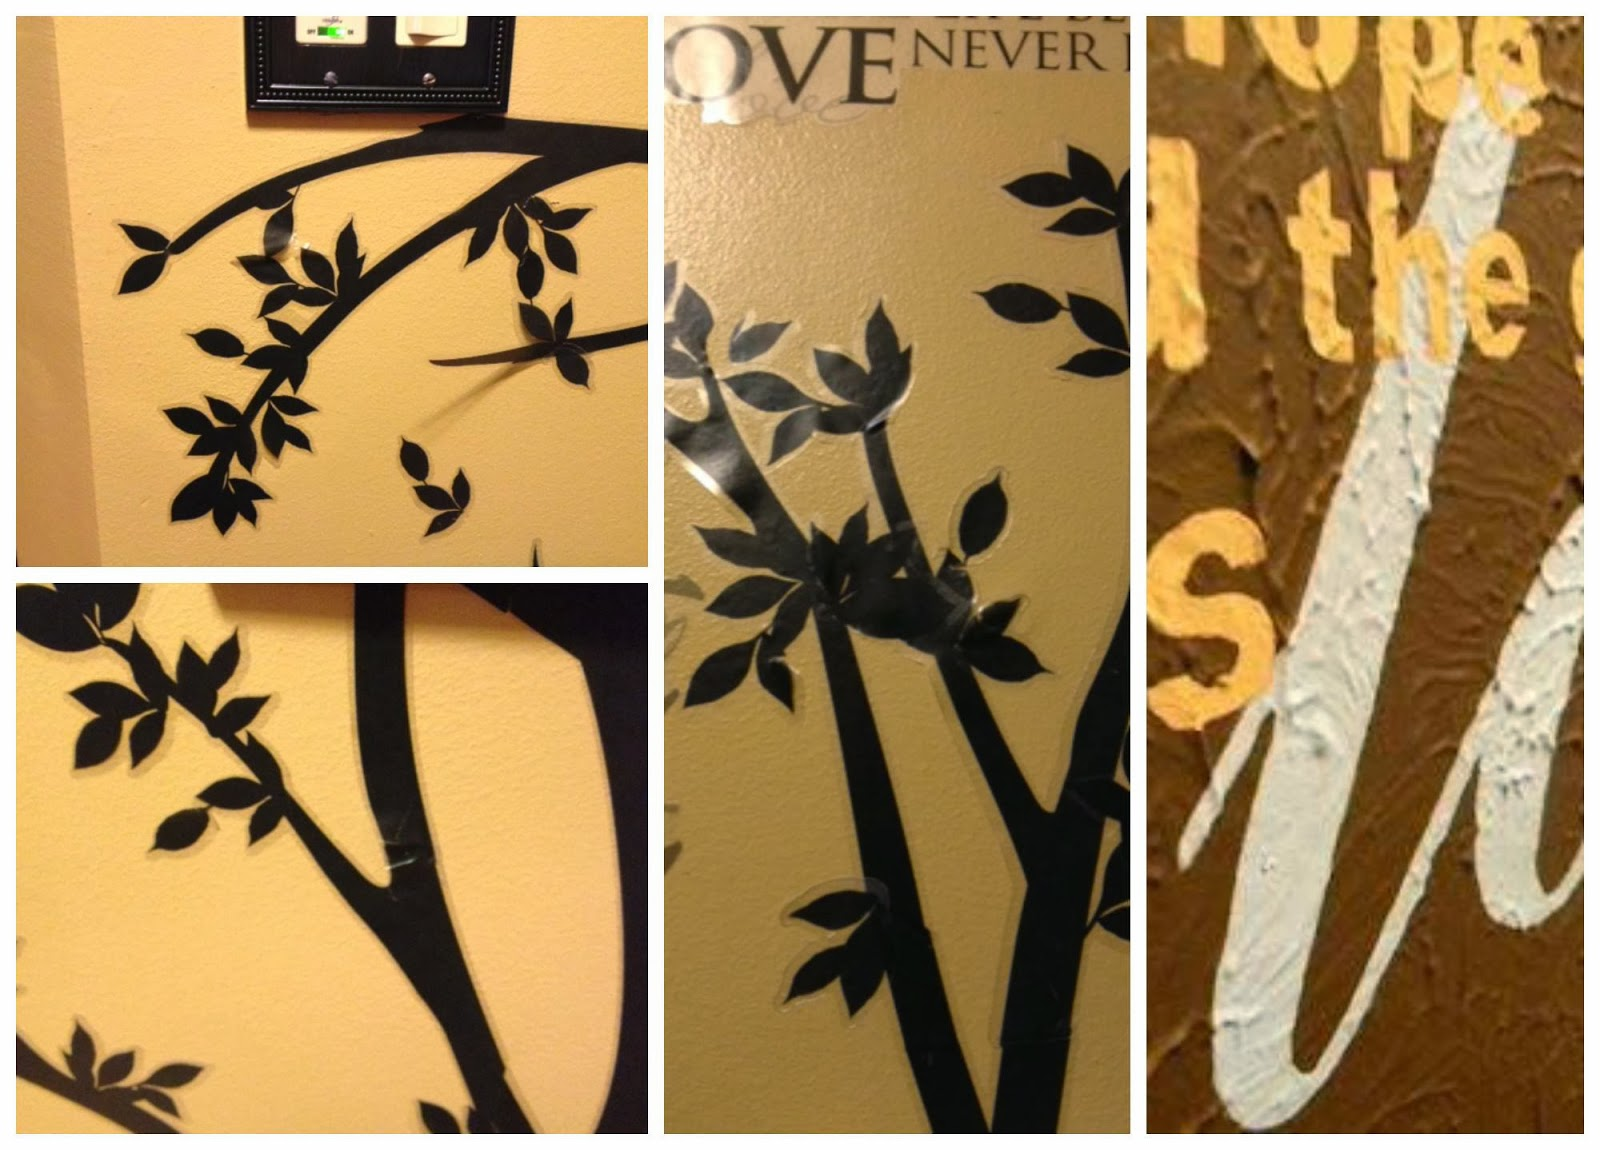 Decorating with Decals: